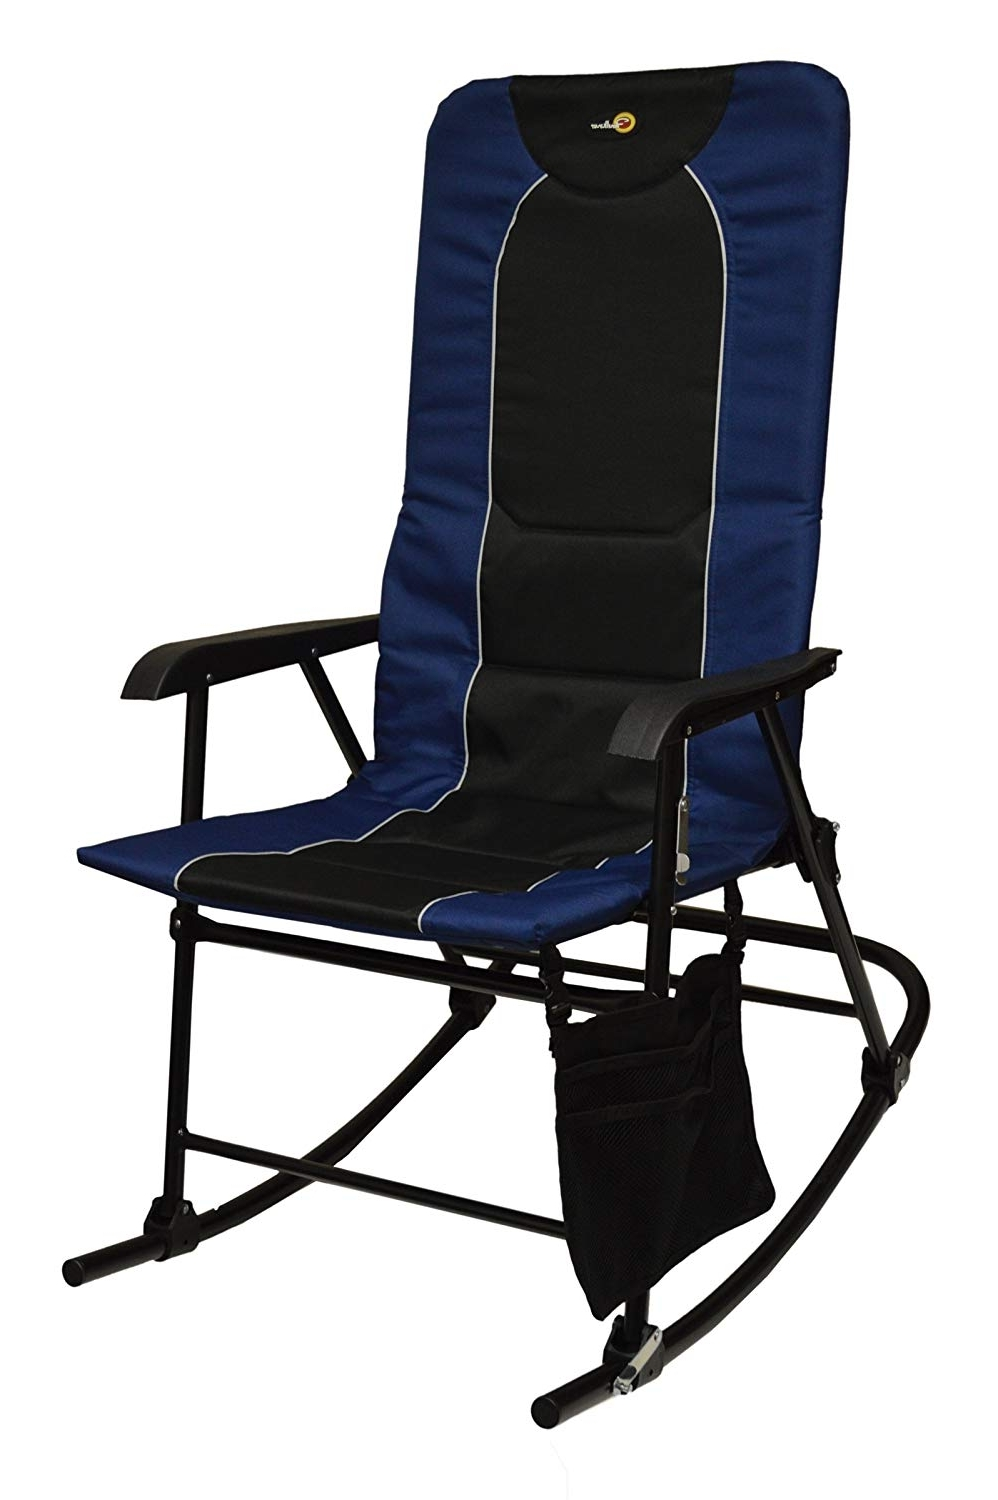 Widely Used Amazon : Faulkner 49598 Dakota Rocking Chair, Blue/black With Regard To Padded Patio Rocking Chairs (View 10 of 15)